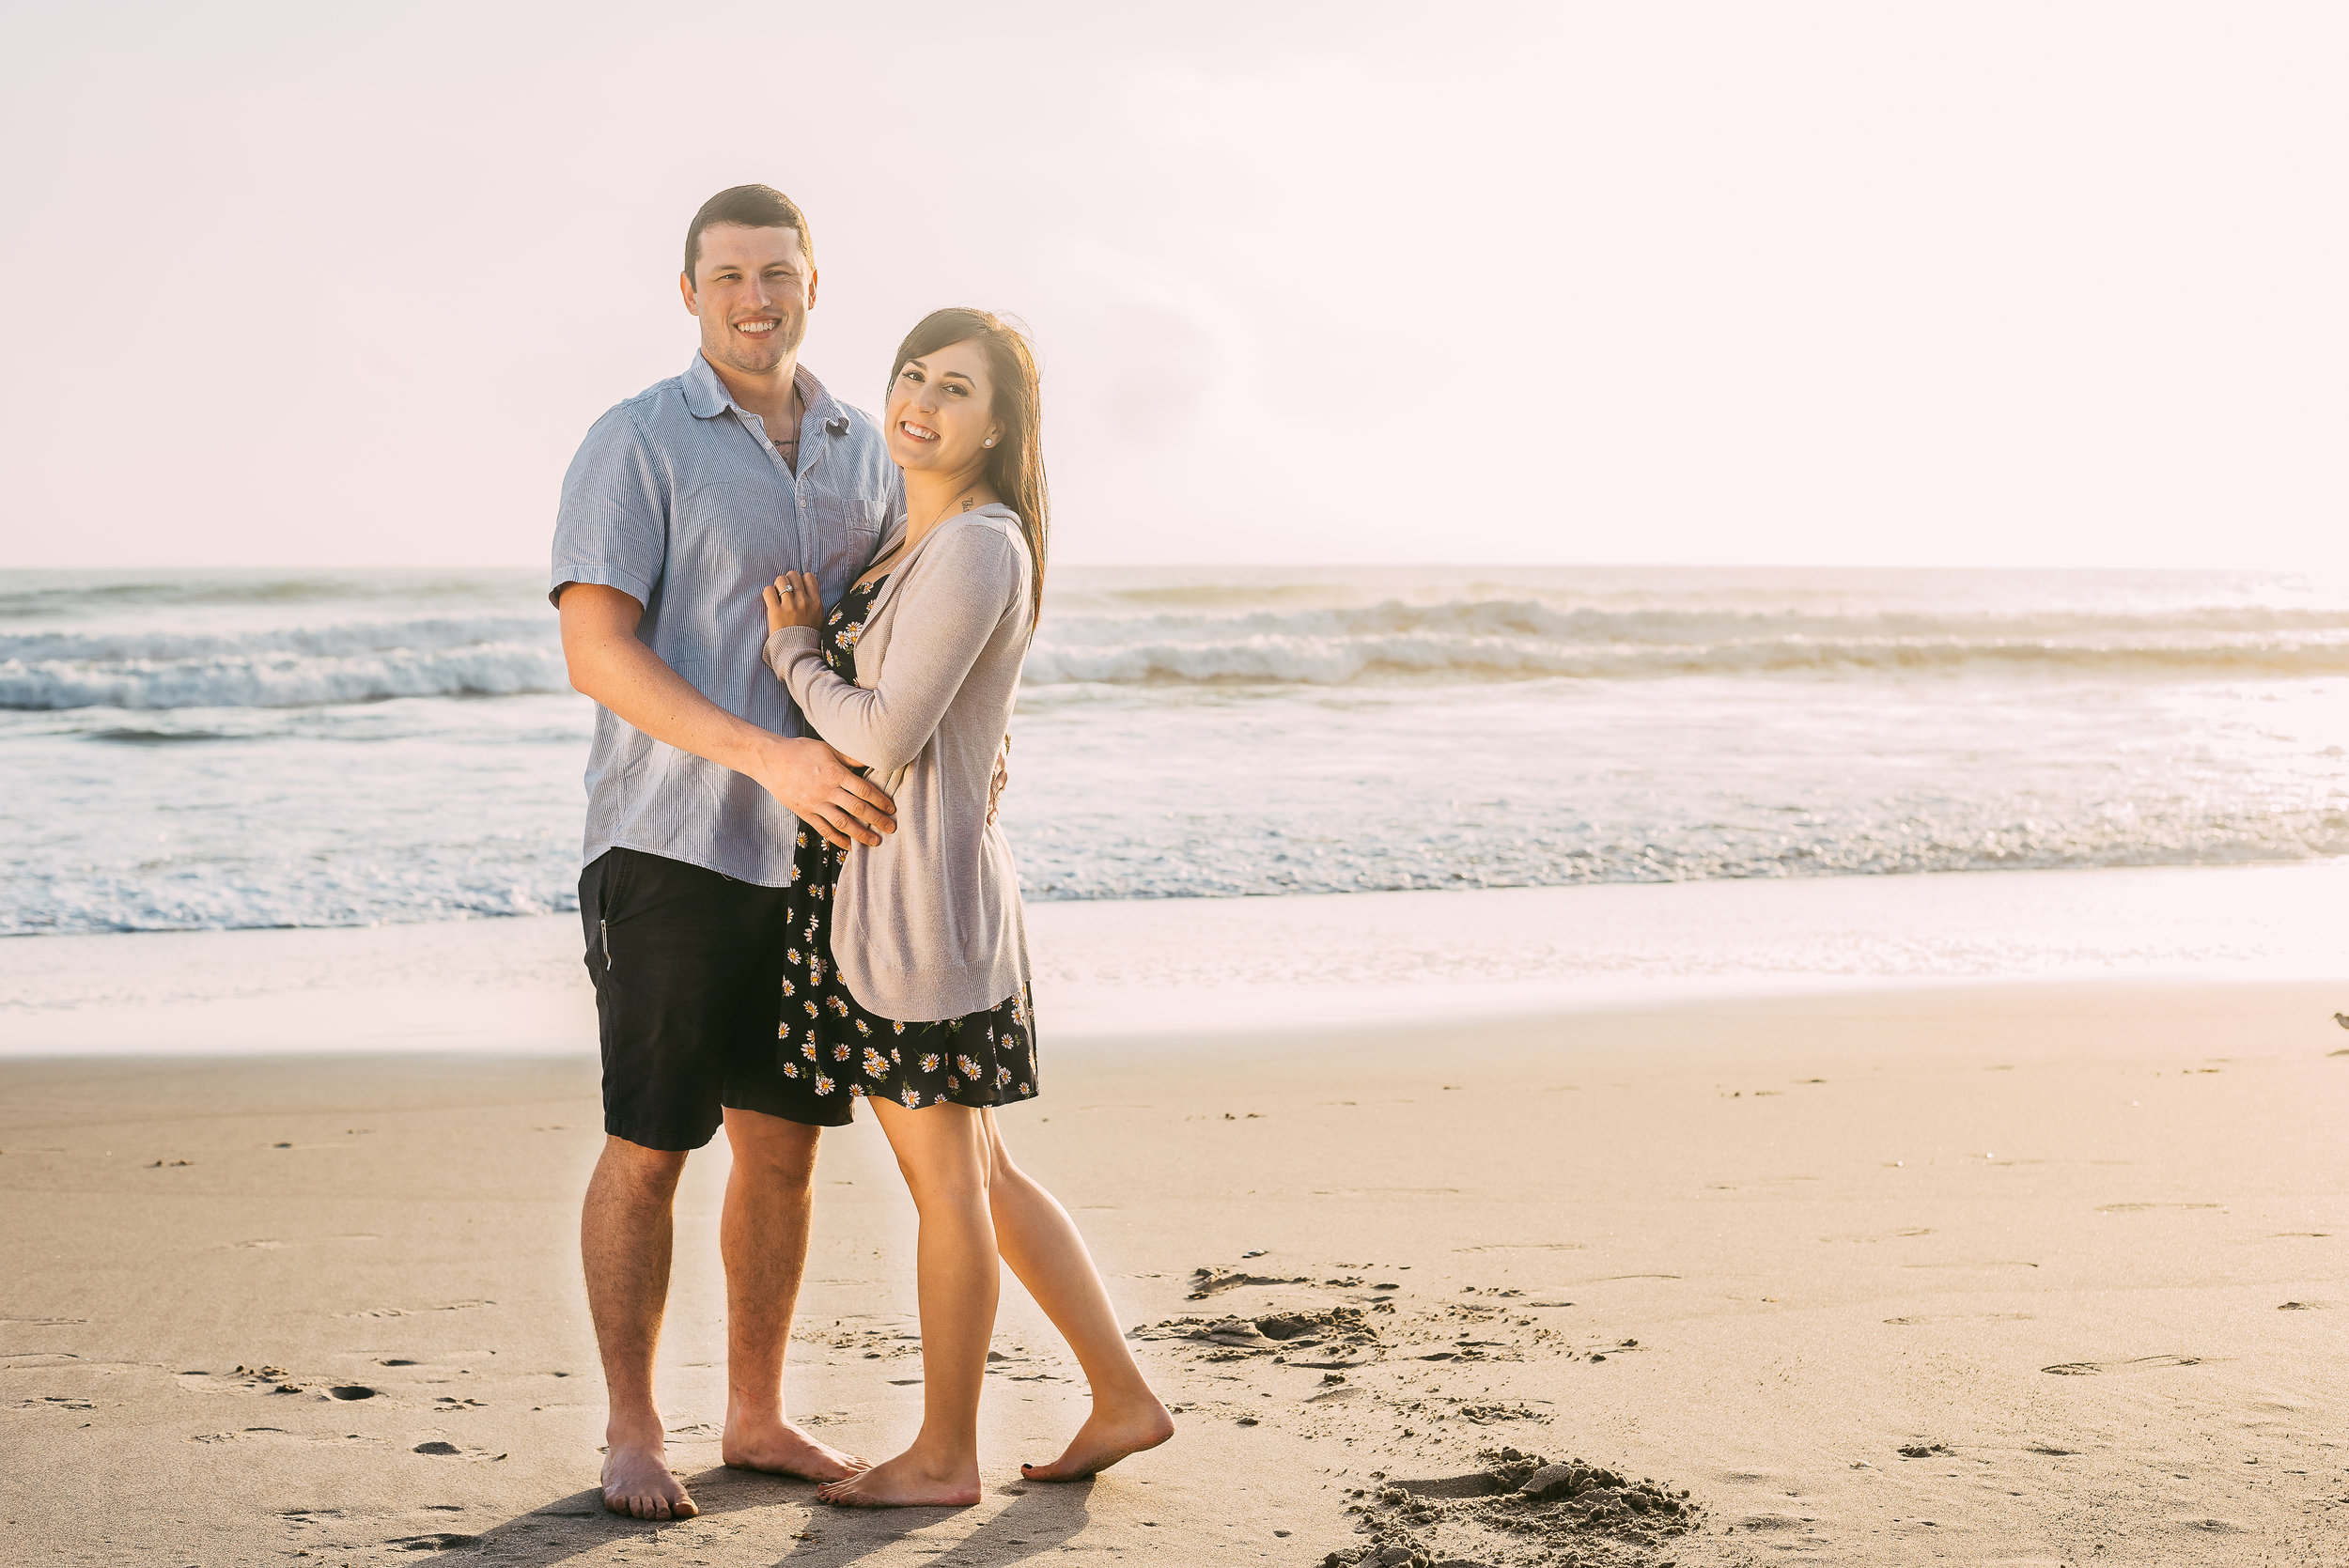 ashley-home-florida-beach-engagement-photo-1-22.jpg